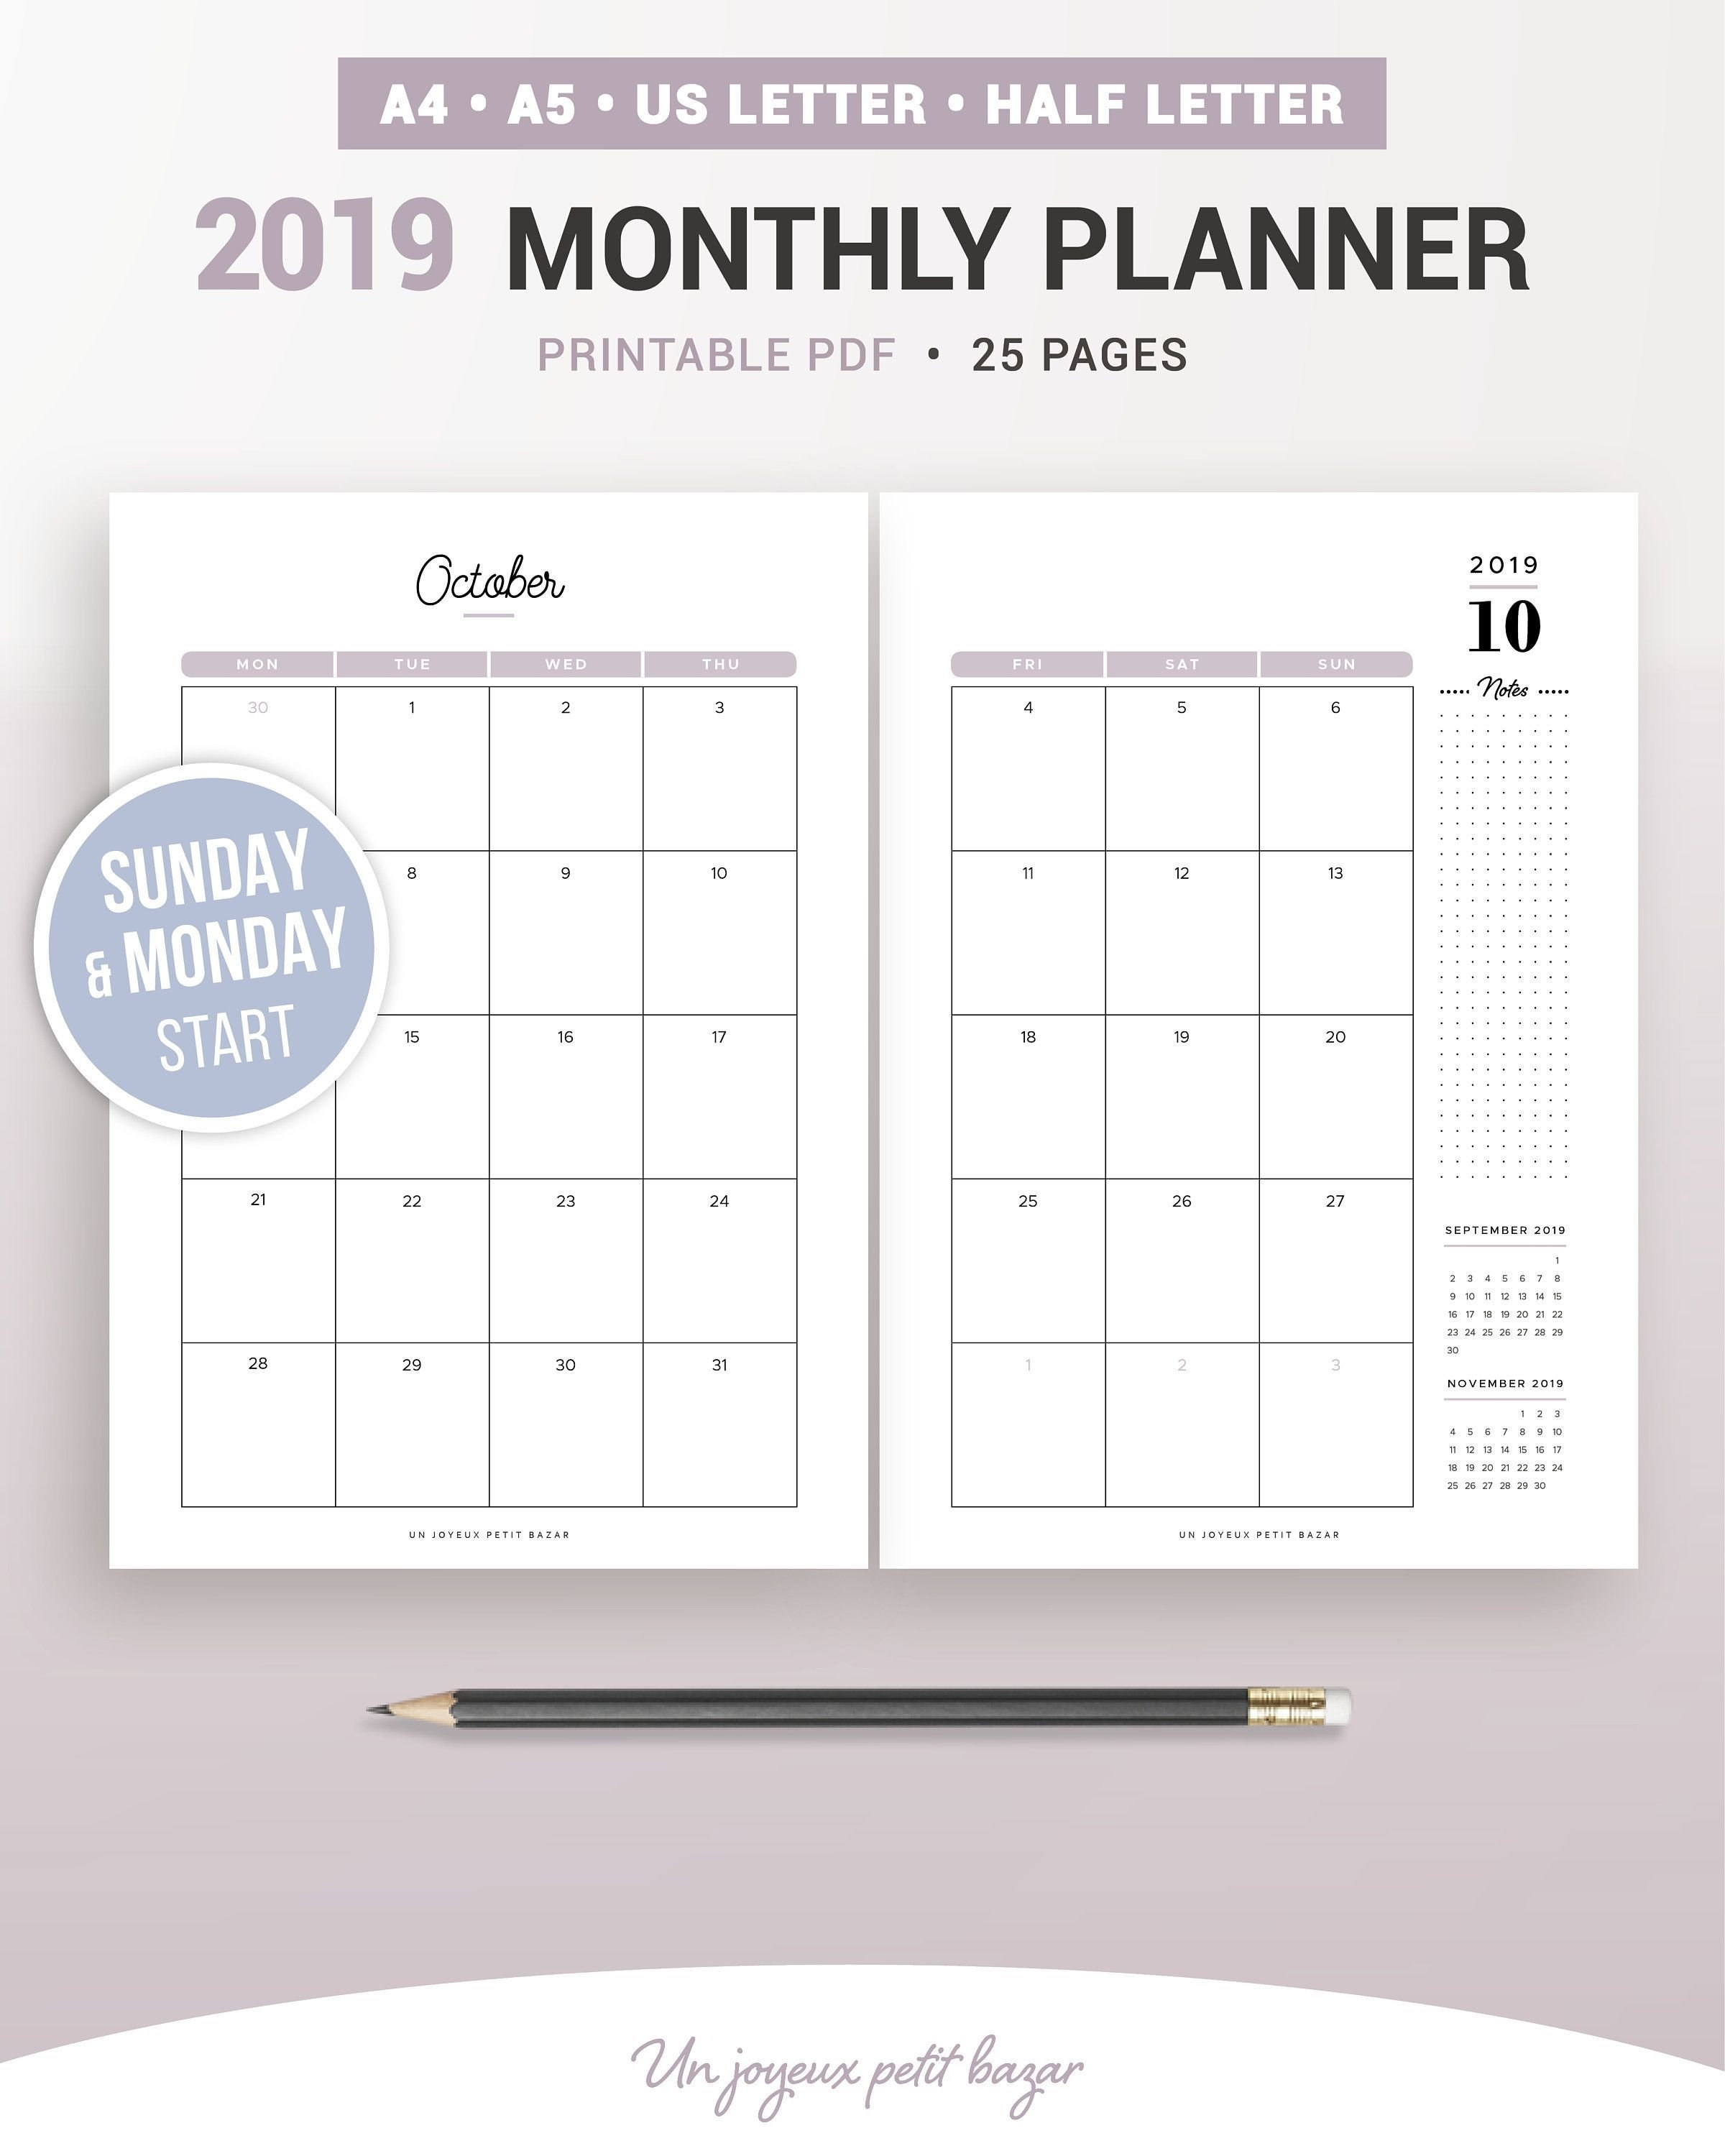 2019 Monthly Planner, 2019 Monthly Calendar, Printable Planner 2 Page Monthly Calendar 2019 Printable